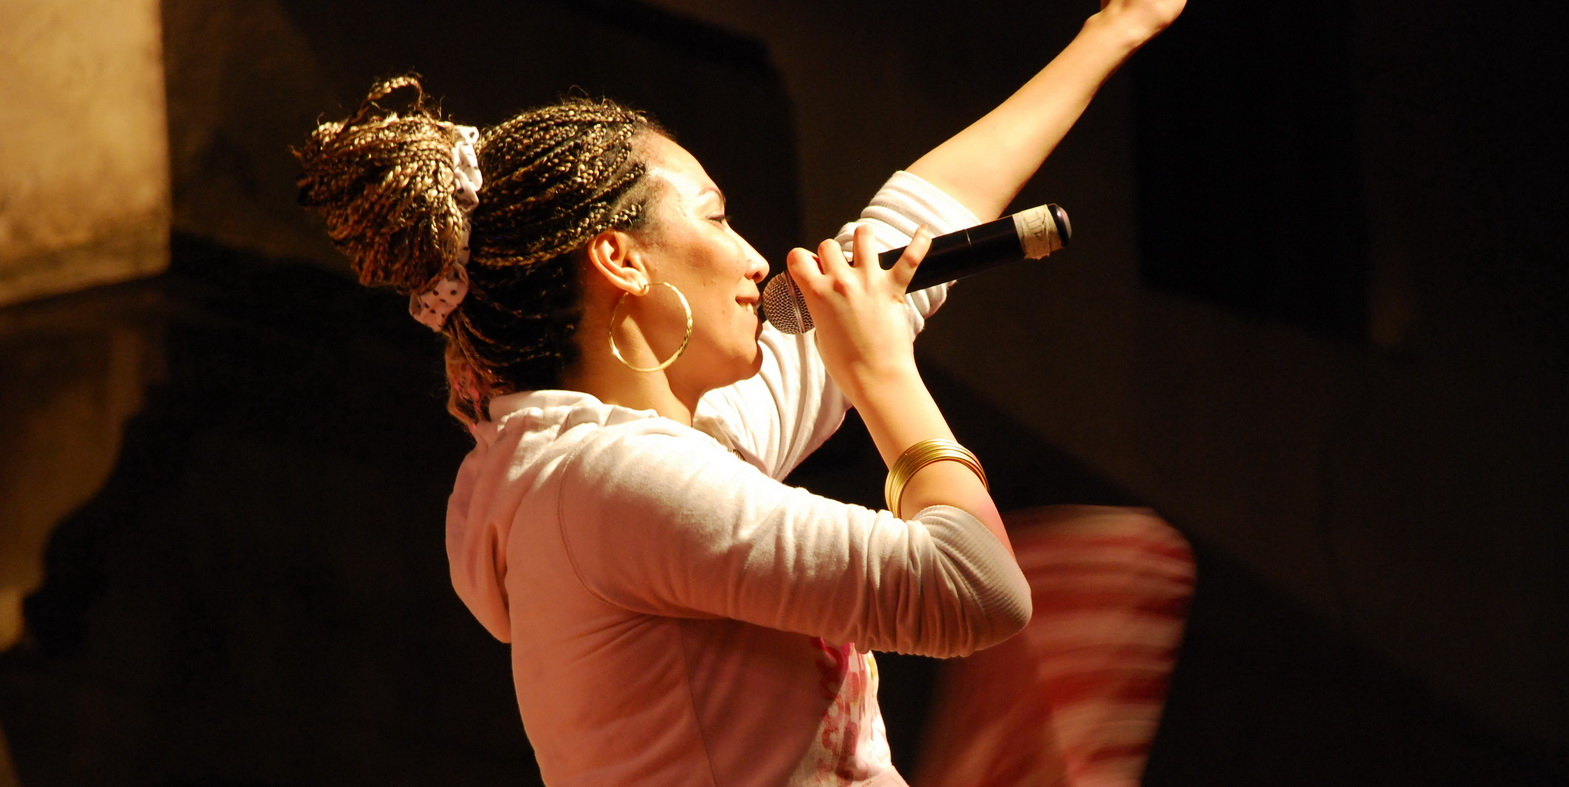 """Hip hop artists such as Morocco's hip hop star Sultana (above), Tunisia's Medisa, France's Sniper band, and Senegal's rap star Bogostyle, will take part this year's round of Assalamalekoum Festival,"" which begins June 20 in Nouakchott, Mauritania.  Magharebia"